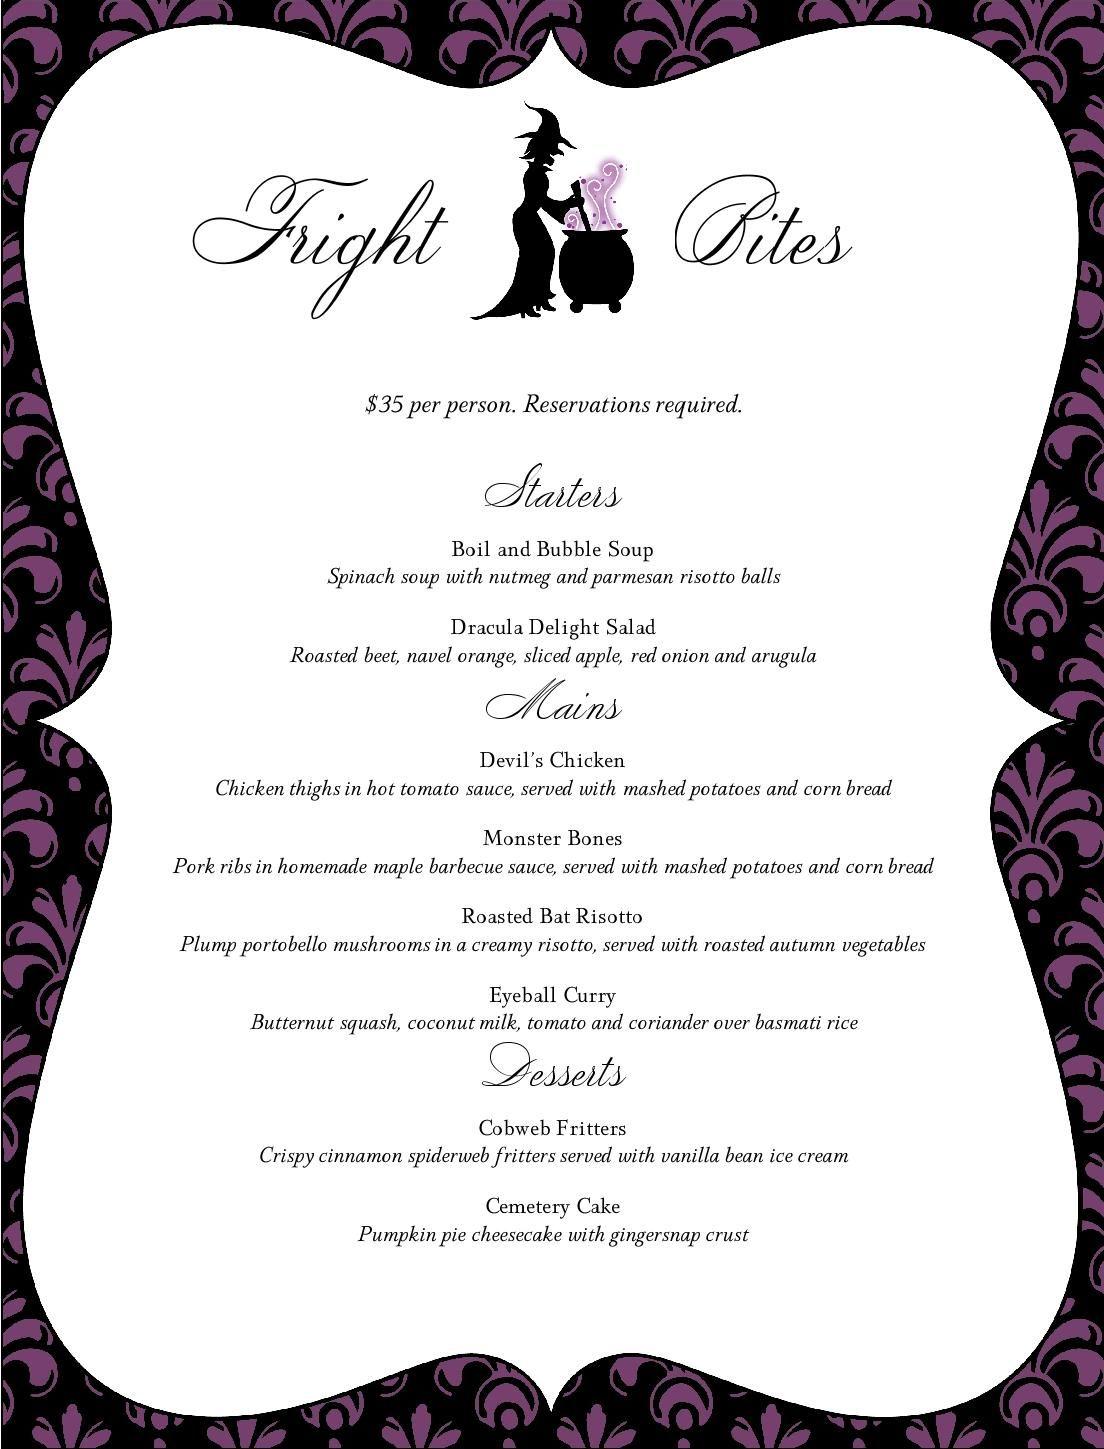 Dinner Party Ideas At A Restaurant Part - 37: Halloween Restaurant Menu - MustHaveMenus. Halloween Dinner PartiesHalloween  Party IdeasHolidays ...